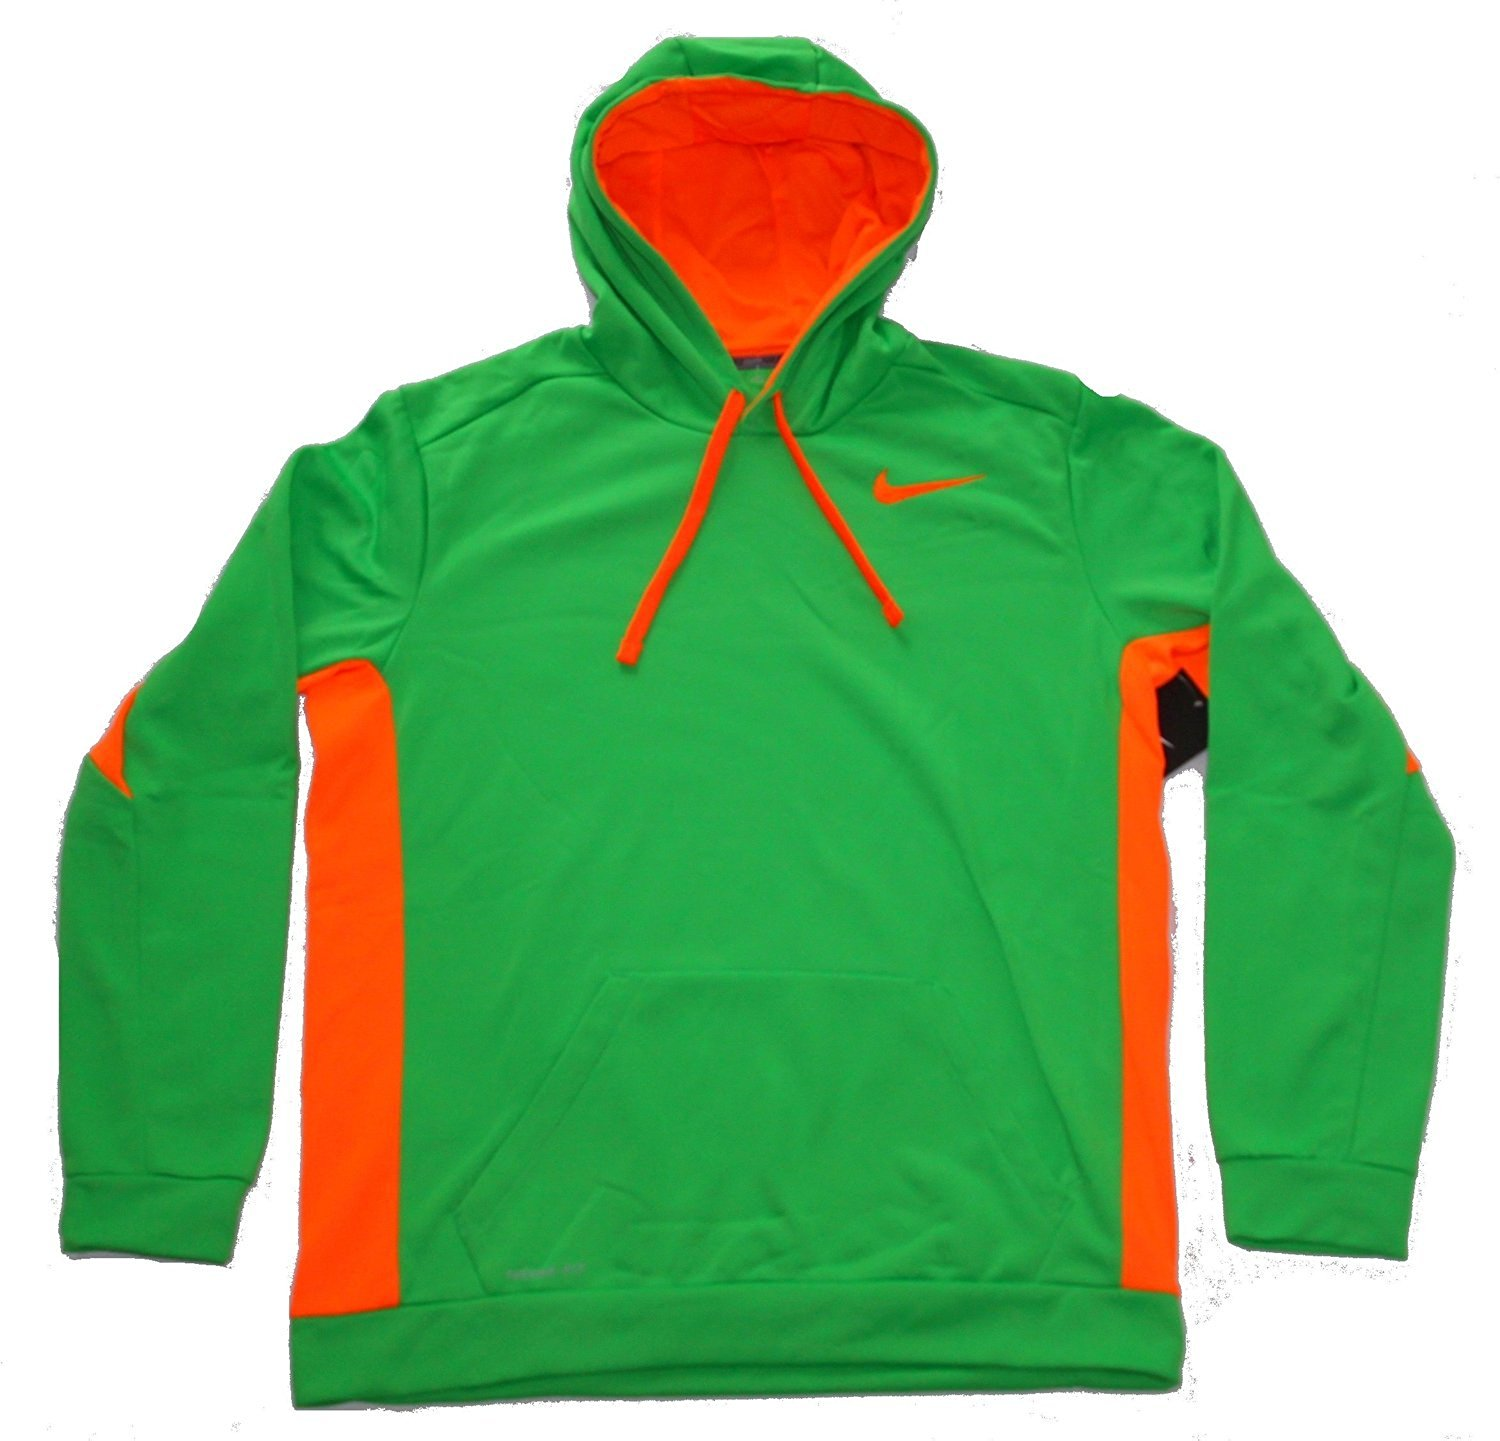 41537e49ffe2 Get Quotations · Nike Mens Therma Fit KO 3.0 Pullover Hoodie Sweatshirt  Green Orange XS